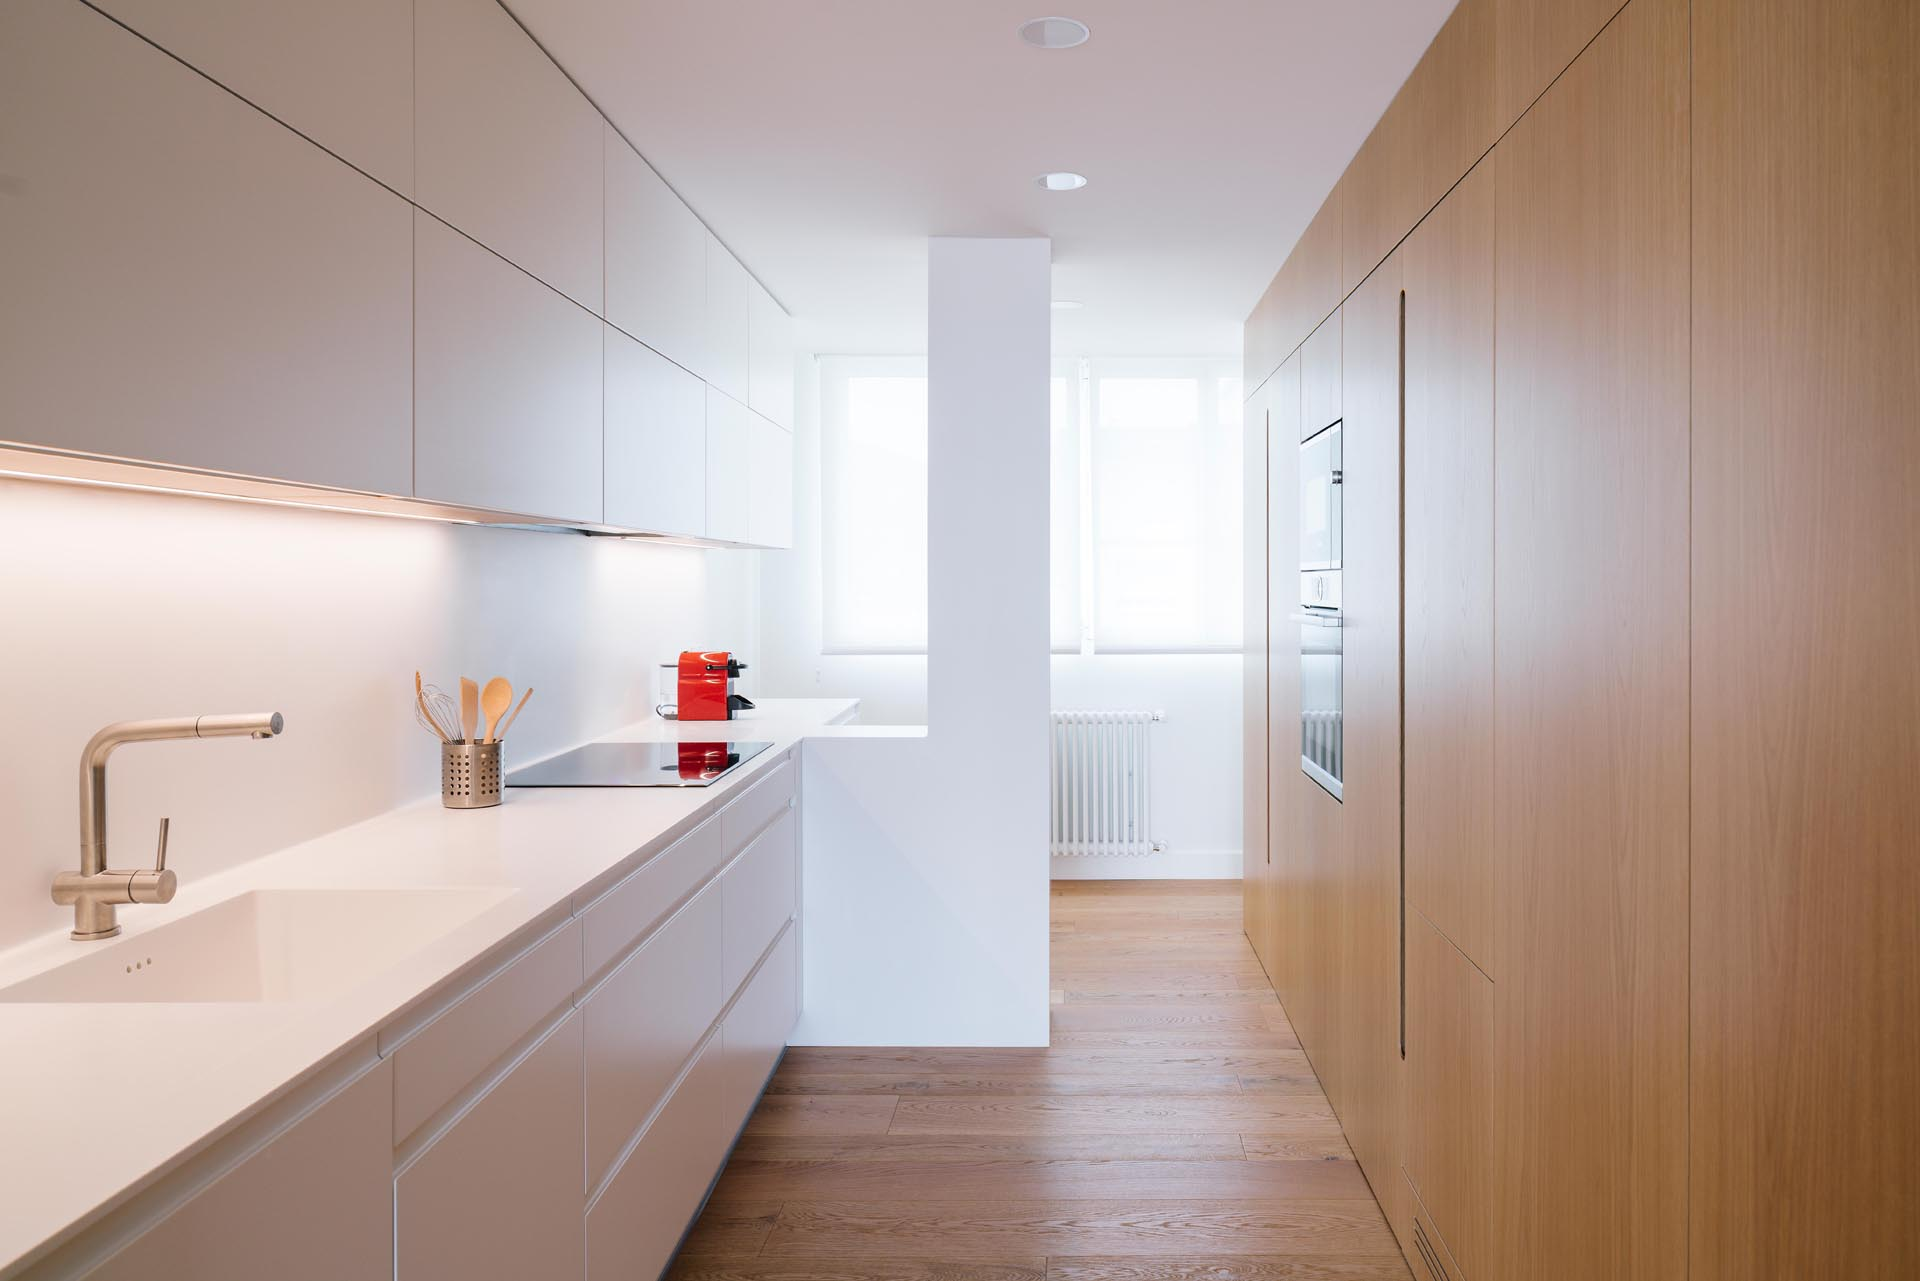 A modern kitchen with minimalist white and wood cabinets.